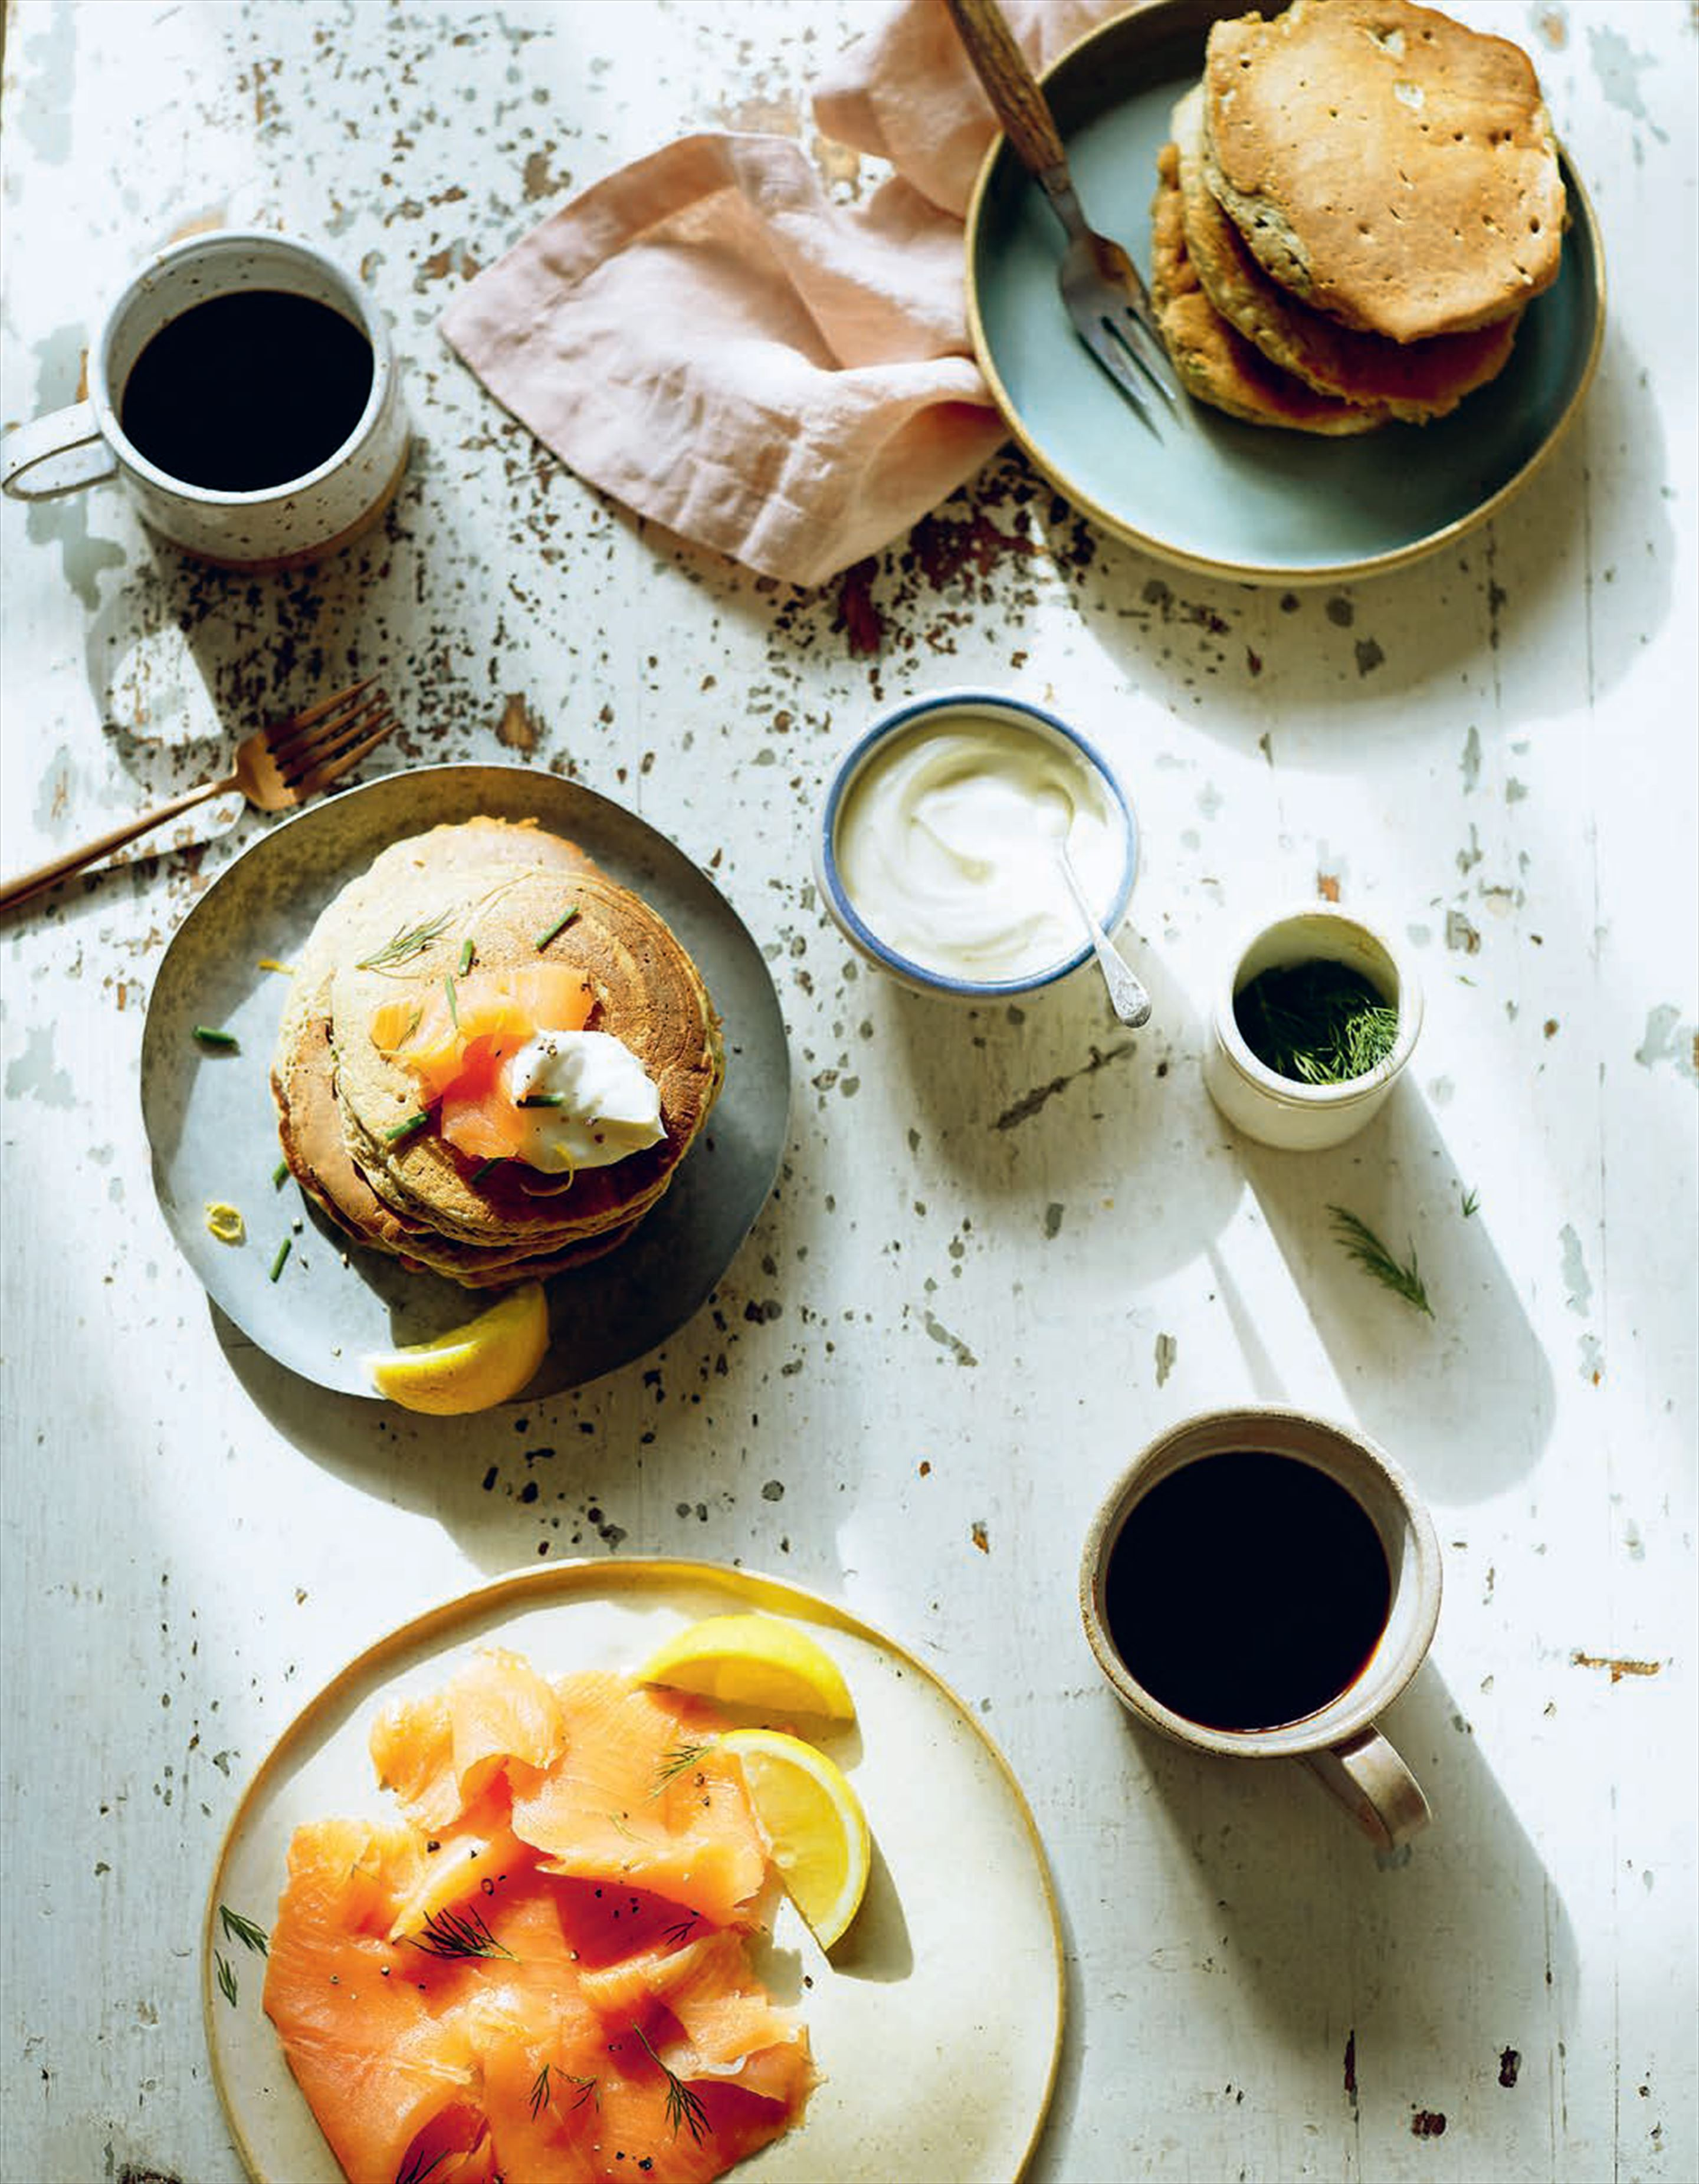 Buckwheat, chive & lemon pancakes with smoked salmon & crème fraîche